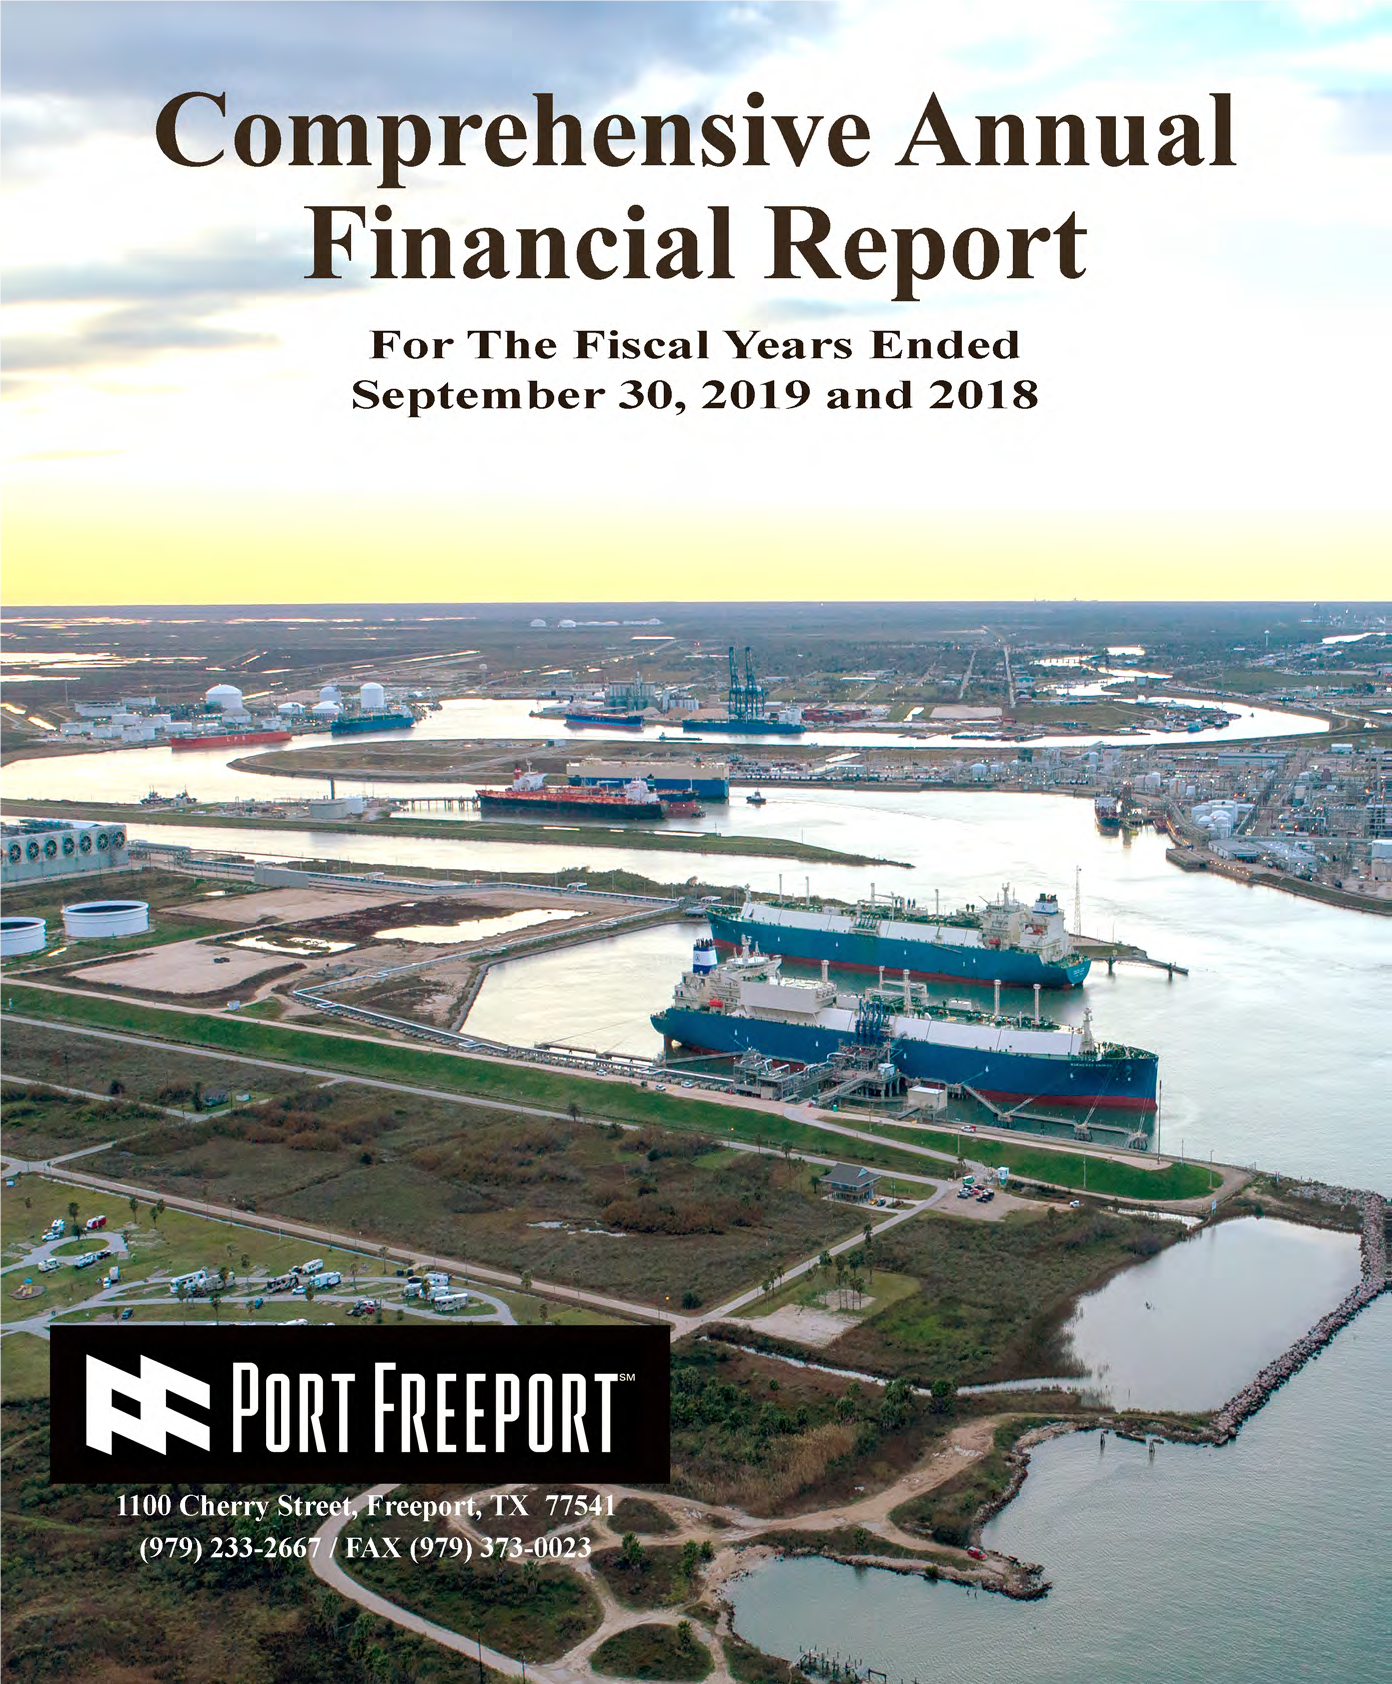 FY19 Financial report image